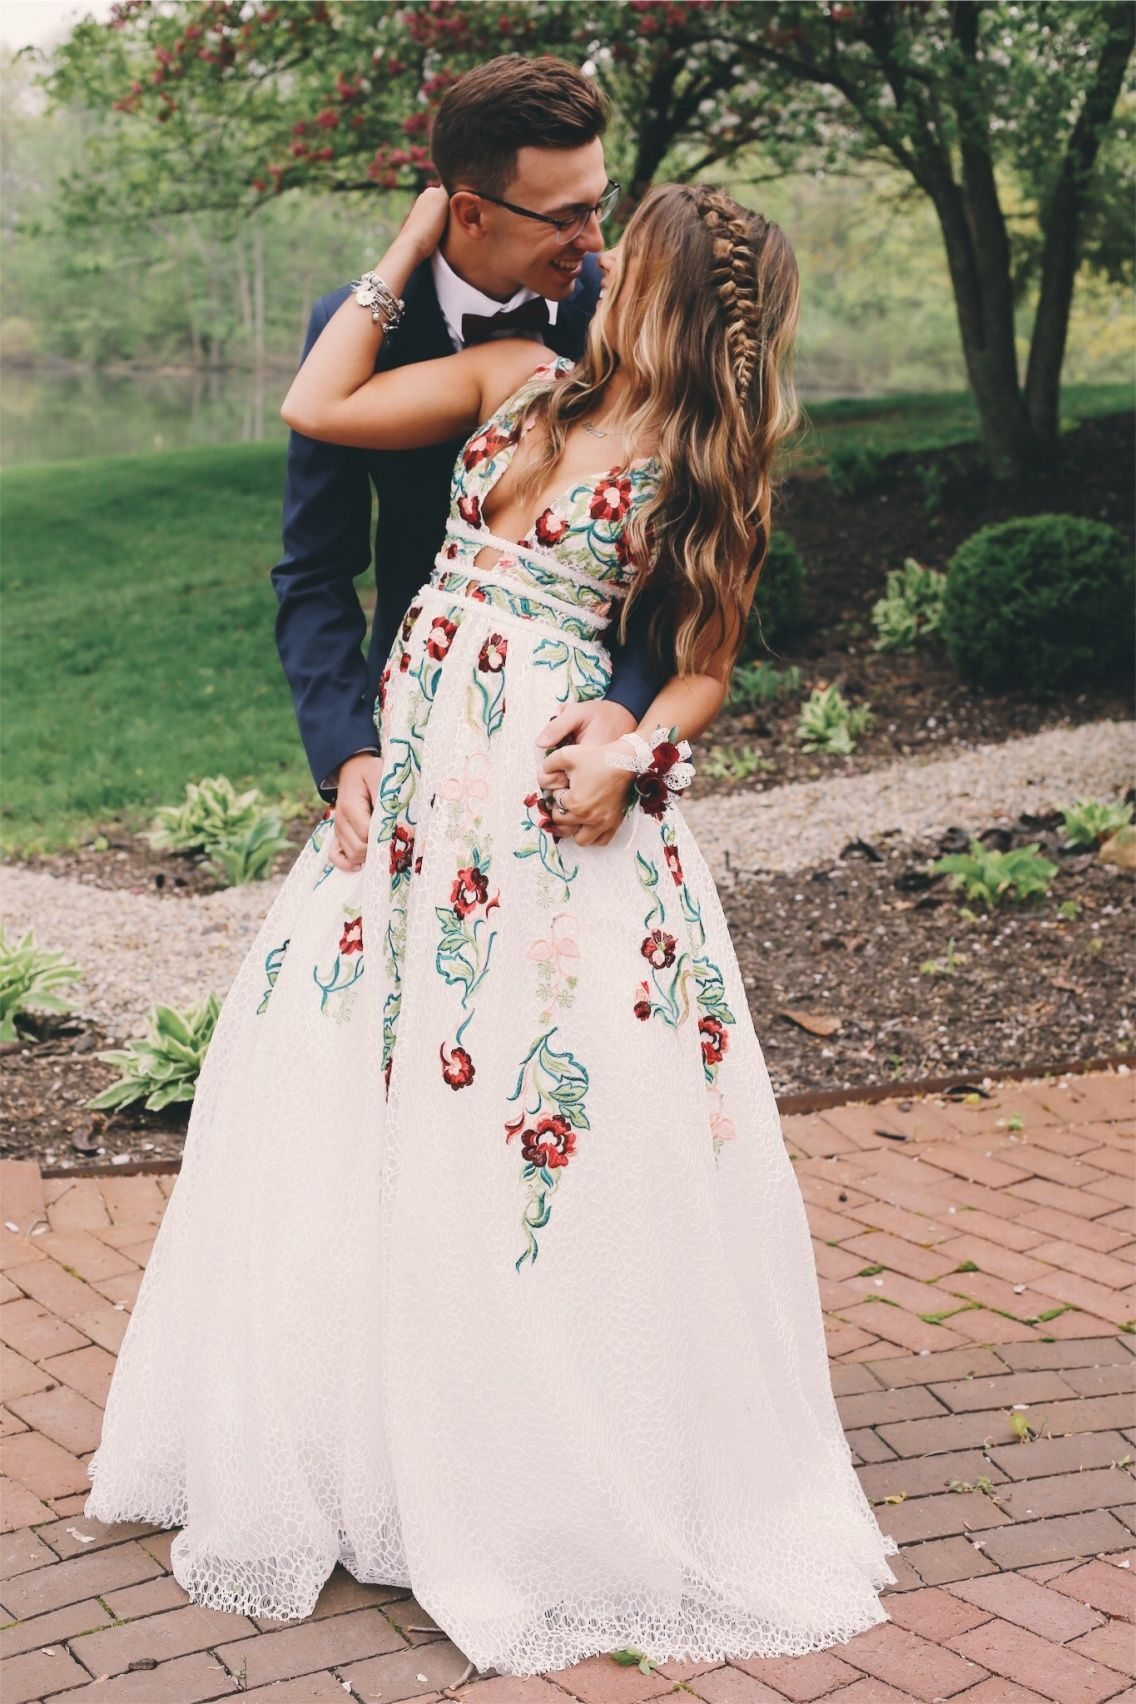 Vsco Oliviabusch Printed Prom Dresses Prom Photoshoot Prom Dresses Lace [ 1704 x 1136 Pixel ]